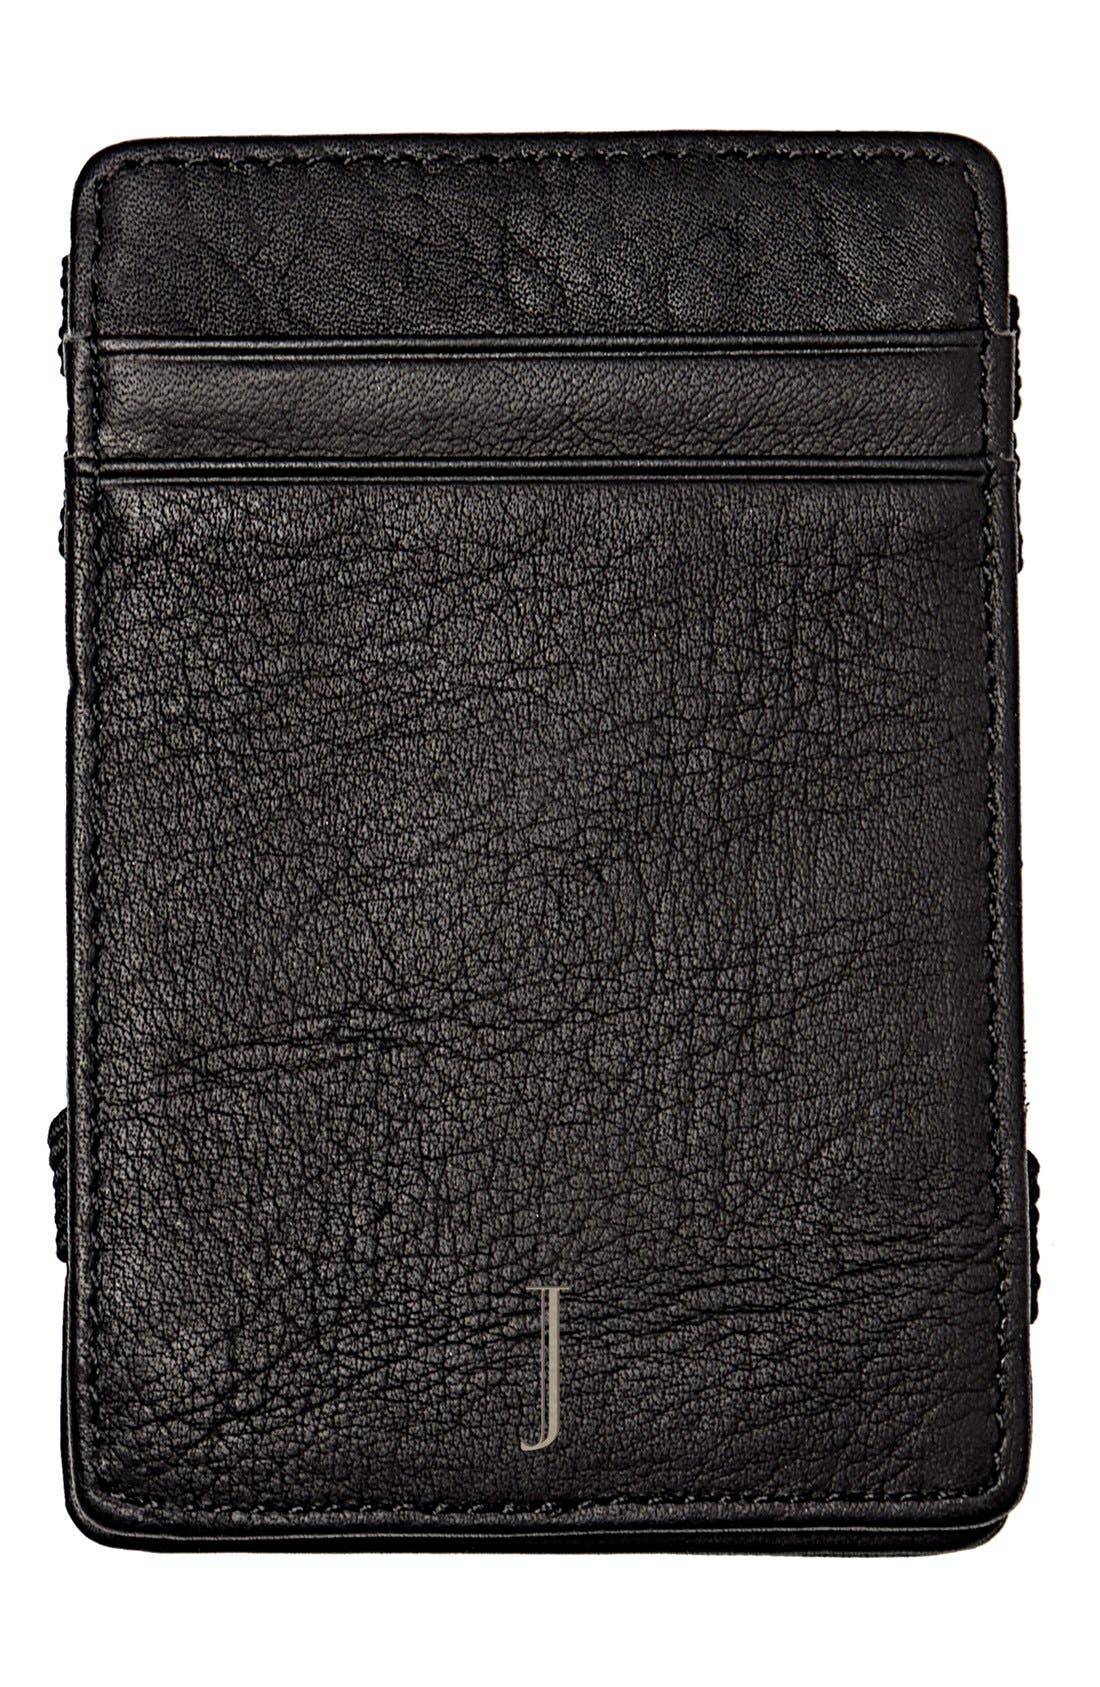 Cathy's Concepts 'Magic' Monogram Leather Wallet